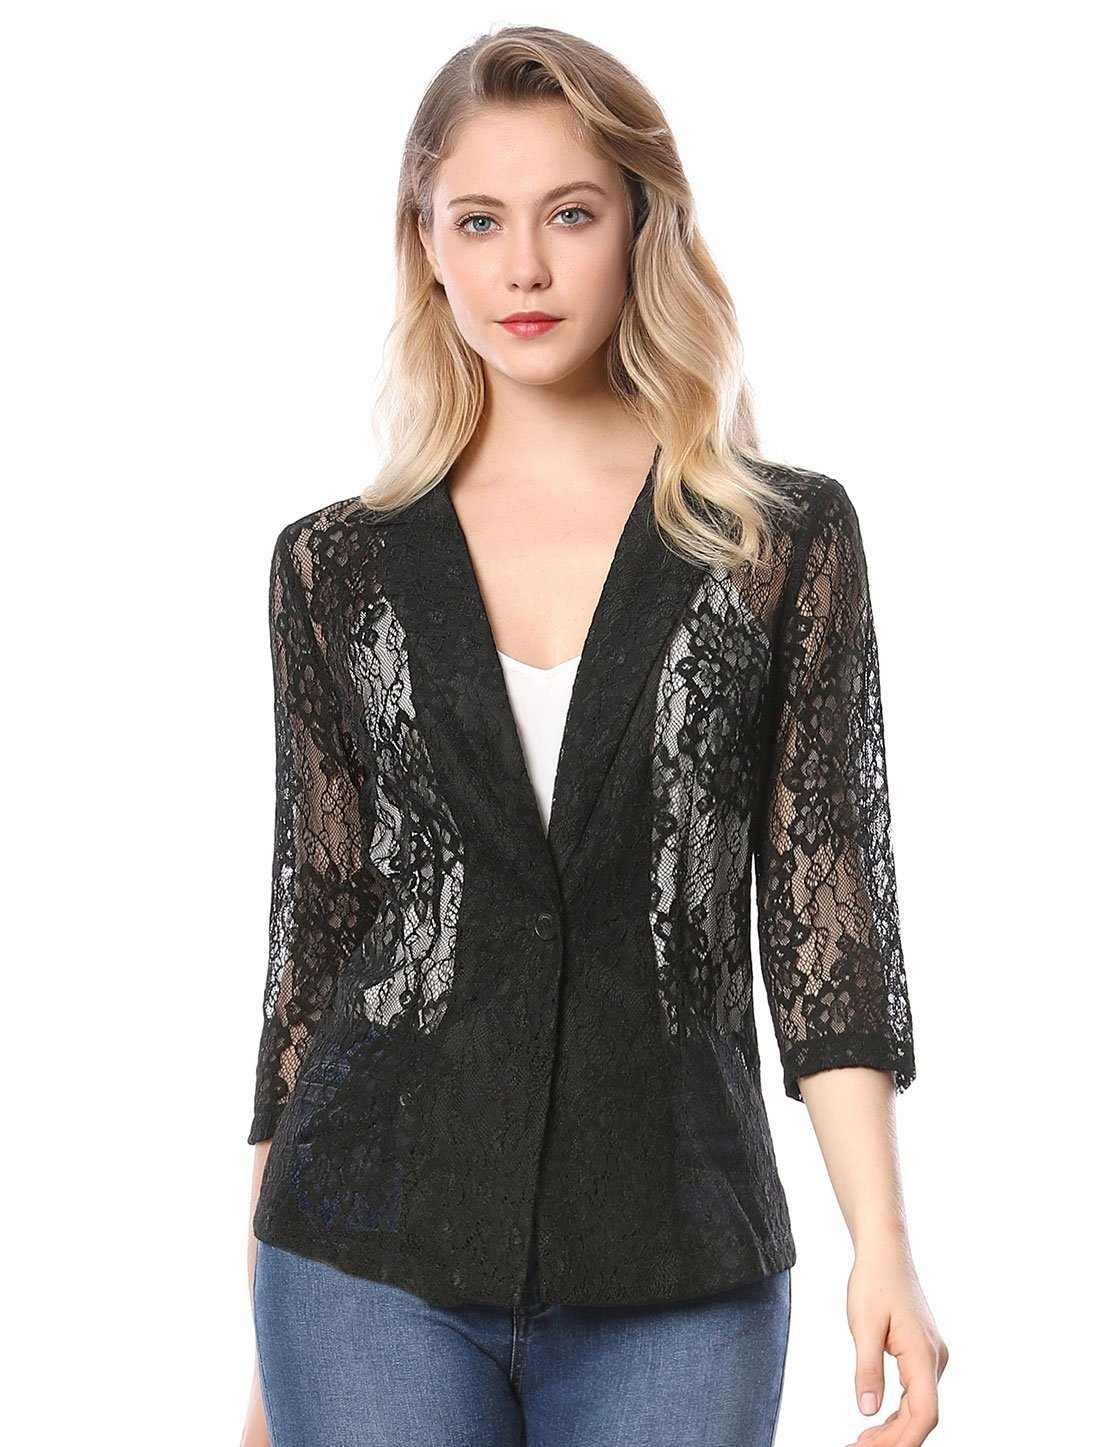 Allegra K Women's 3/4 Sleeves Notched Lapel One-Button Lace Blazer XL Black